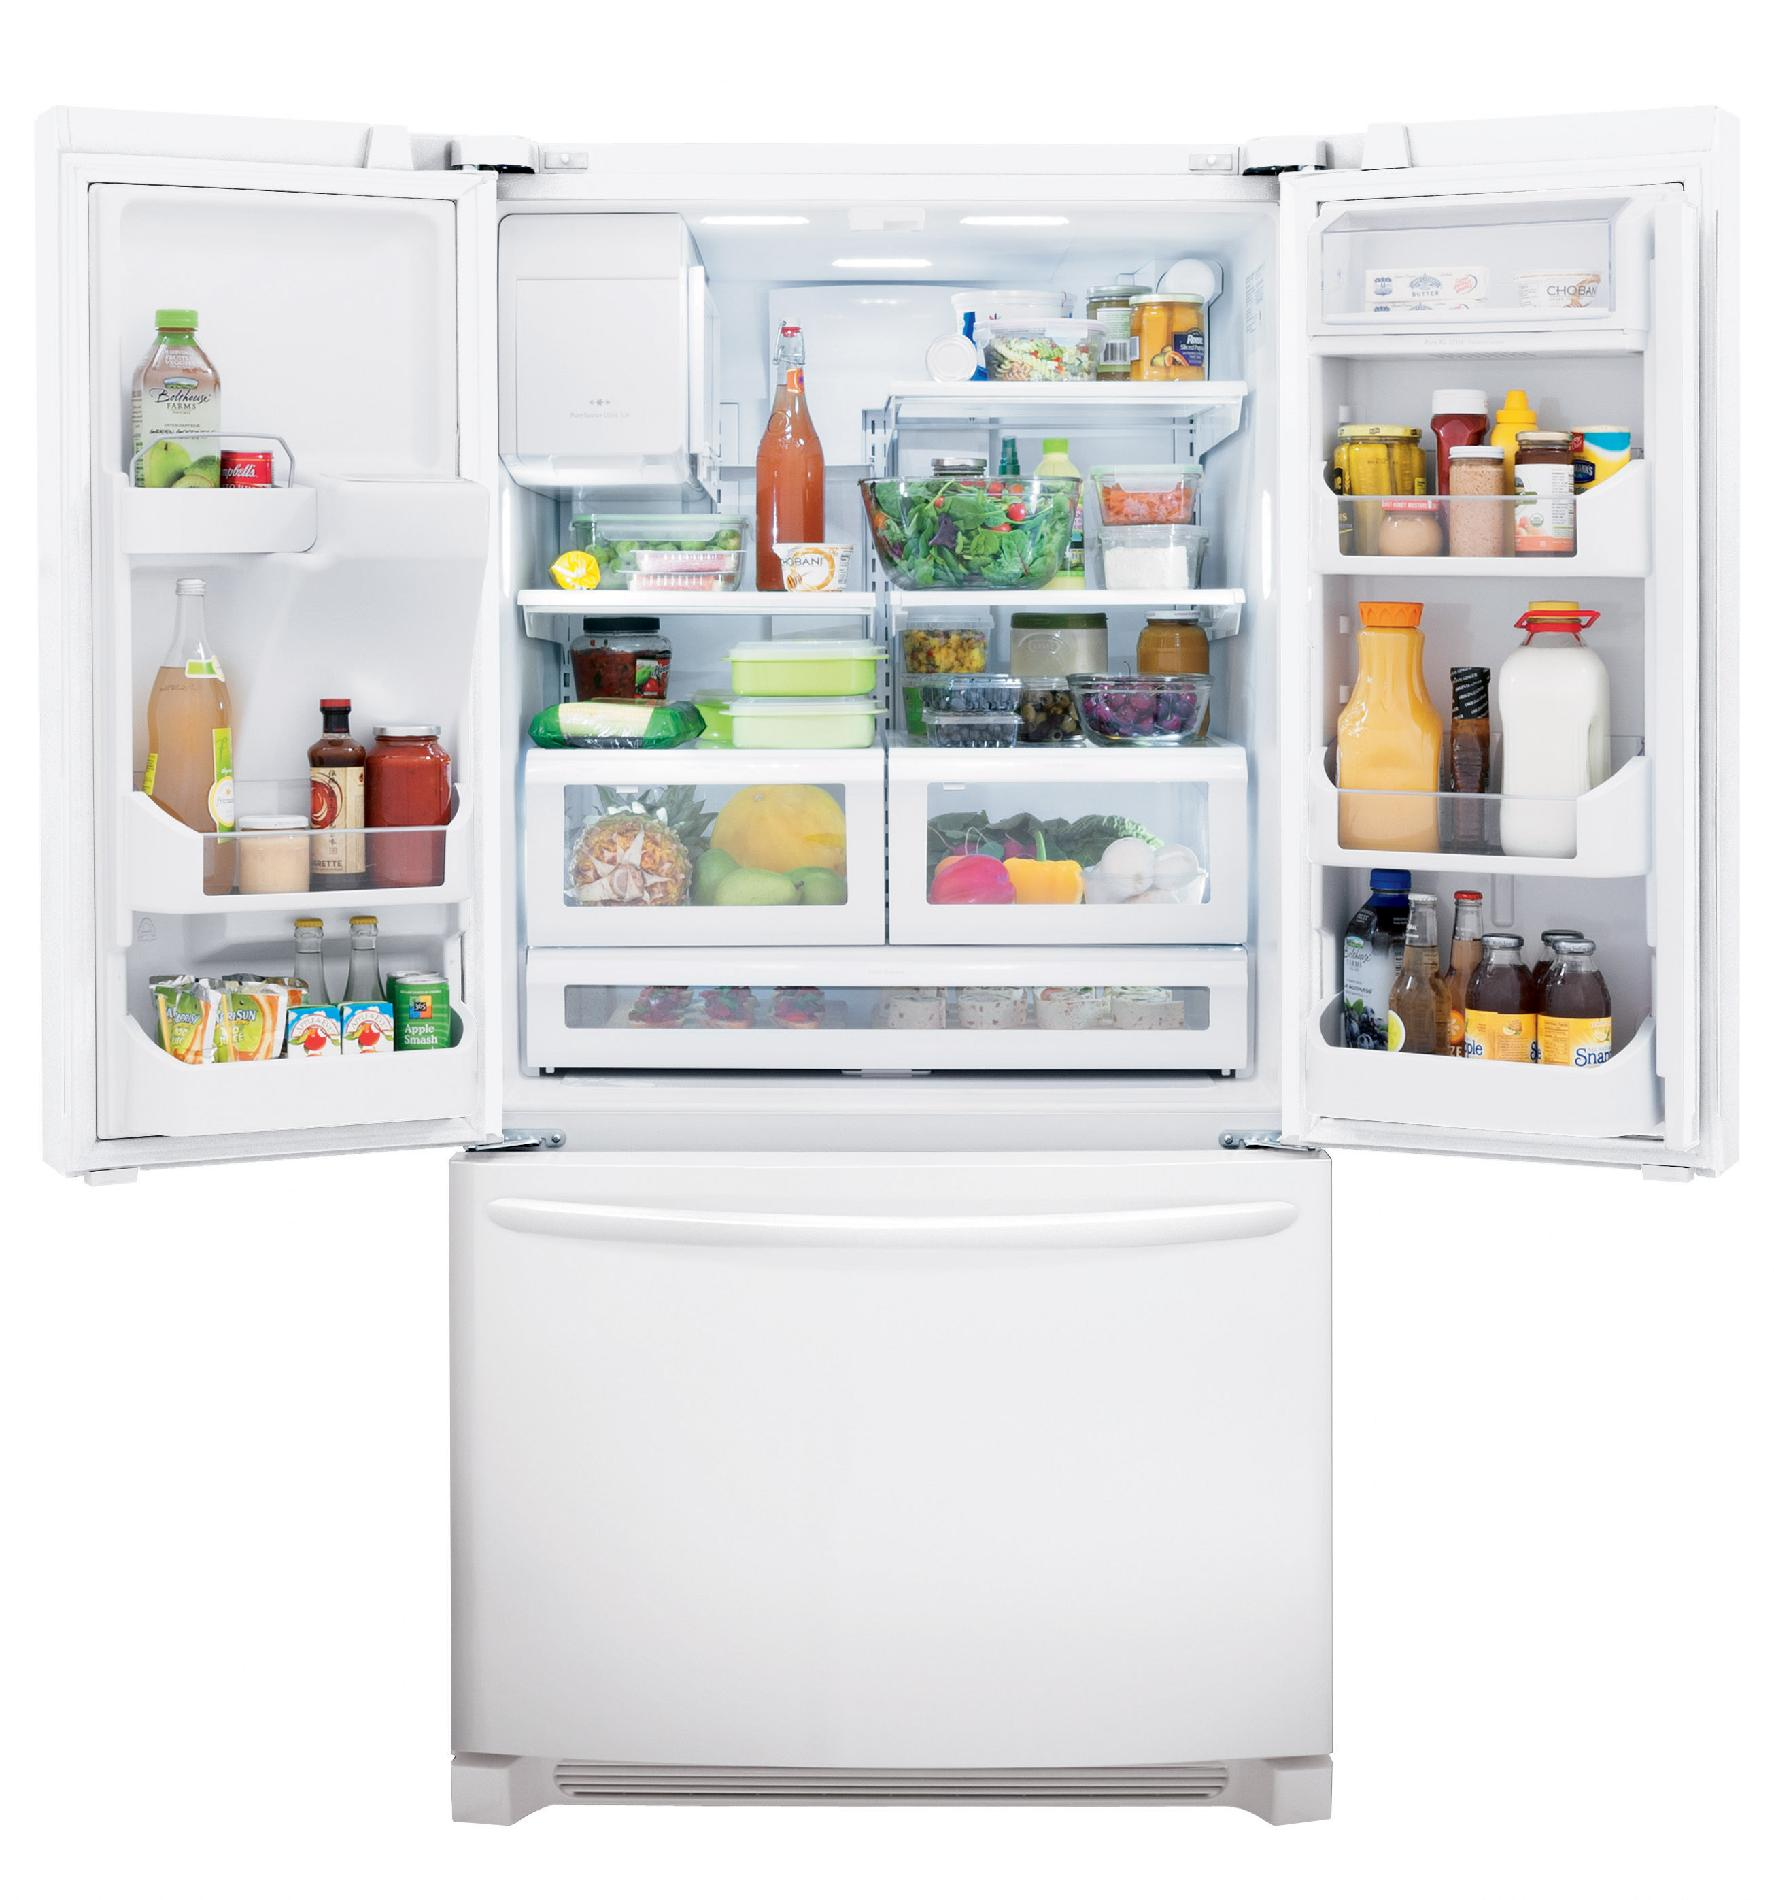 Frigidaire Gallery FGHB2866PP Gallery 27.9 cu. ft. French Door Refrigerator - Pearl White